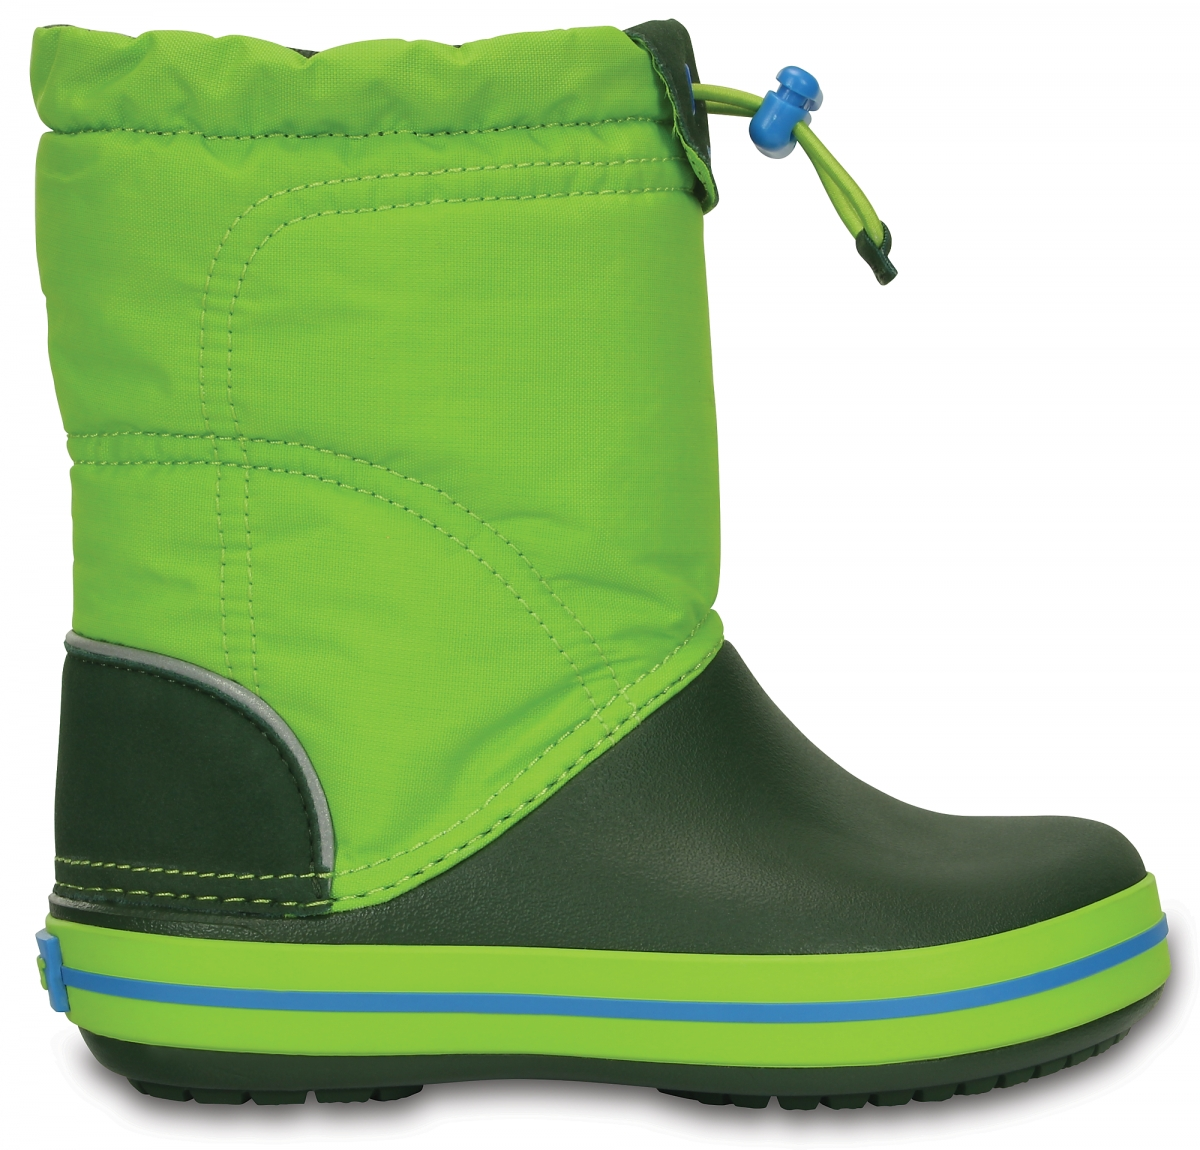 Crocs Crocband LodgePoint Boot Kids - Lime/Forest Green, C11 (28-29)